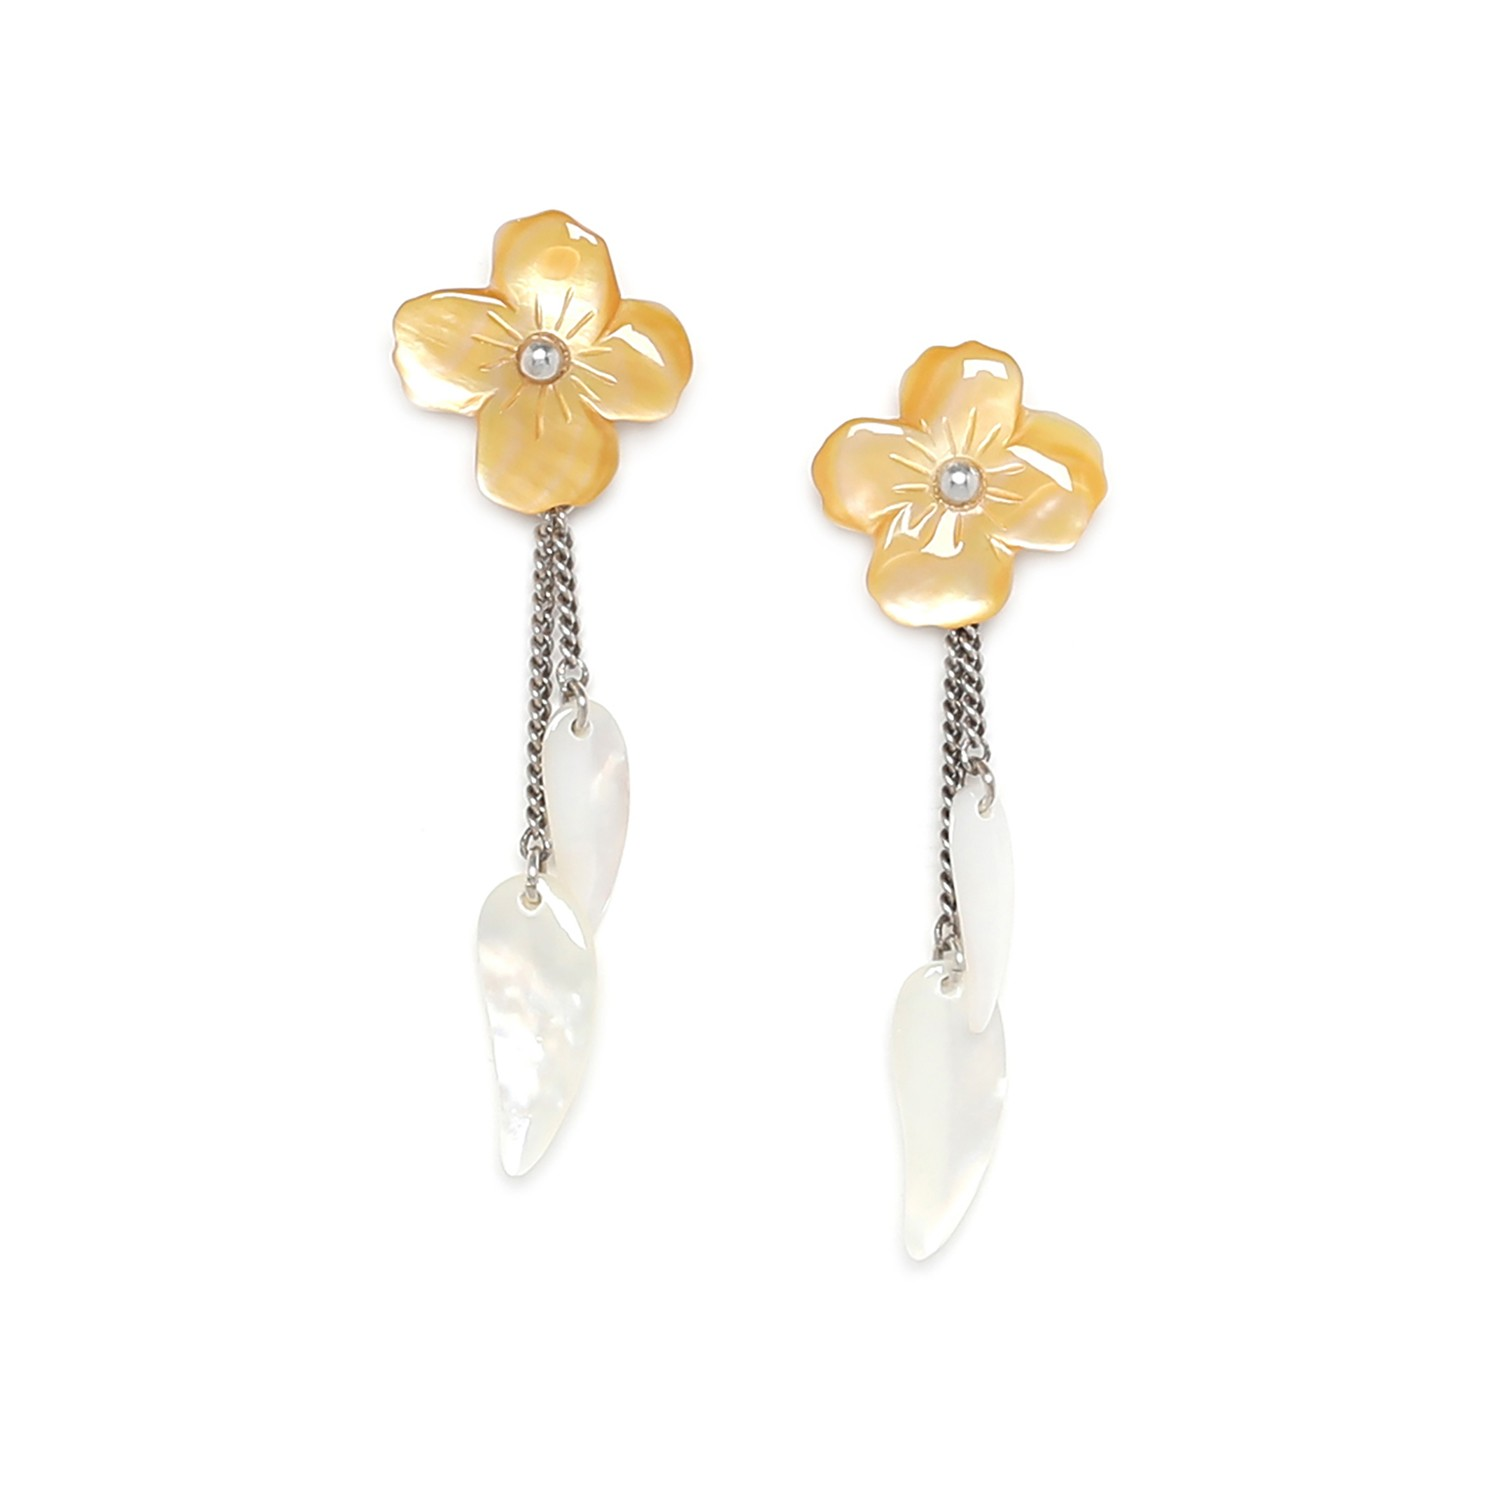 FLEURS DE NACRE  golden MoP earrings w/dangles